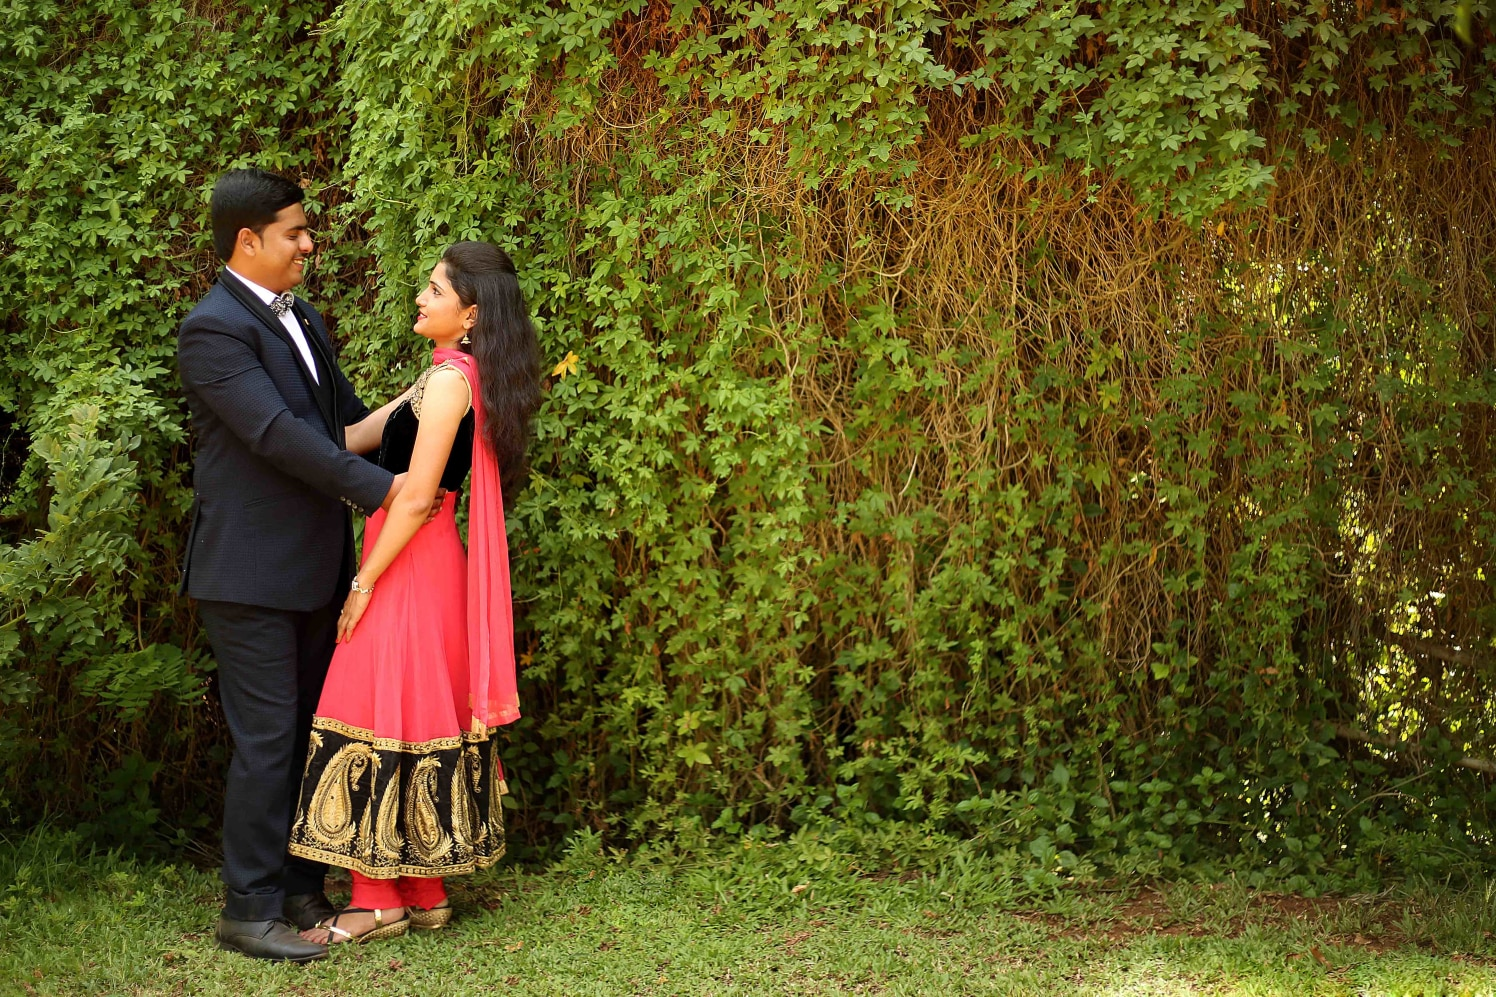 Delirious togetherness by Rushil Jadhav Wedding-photography | Weddings Photos & Ideas